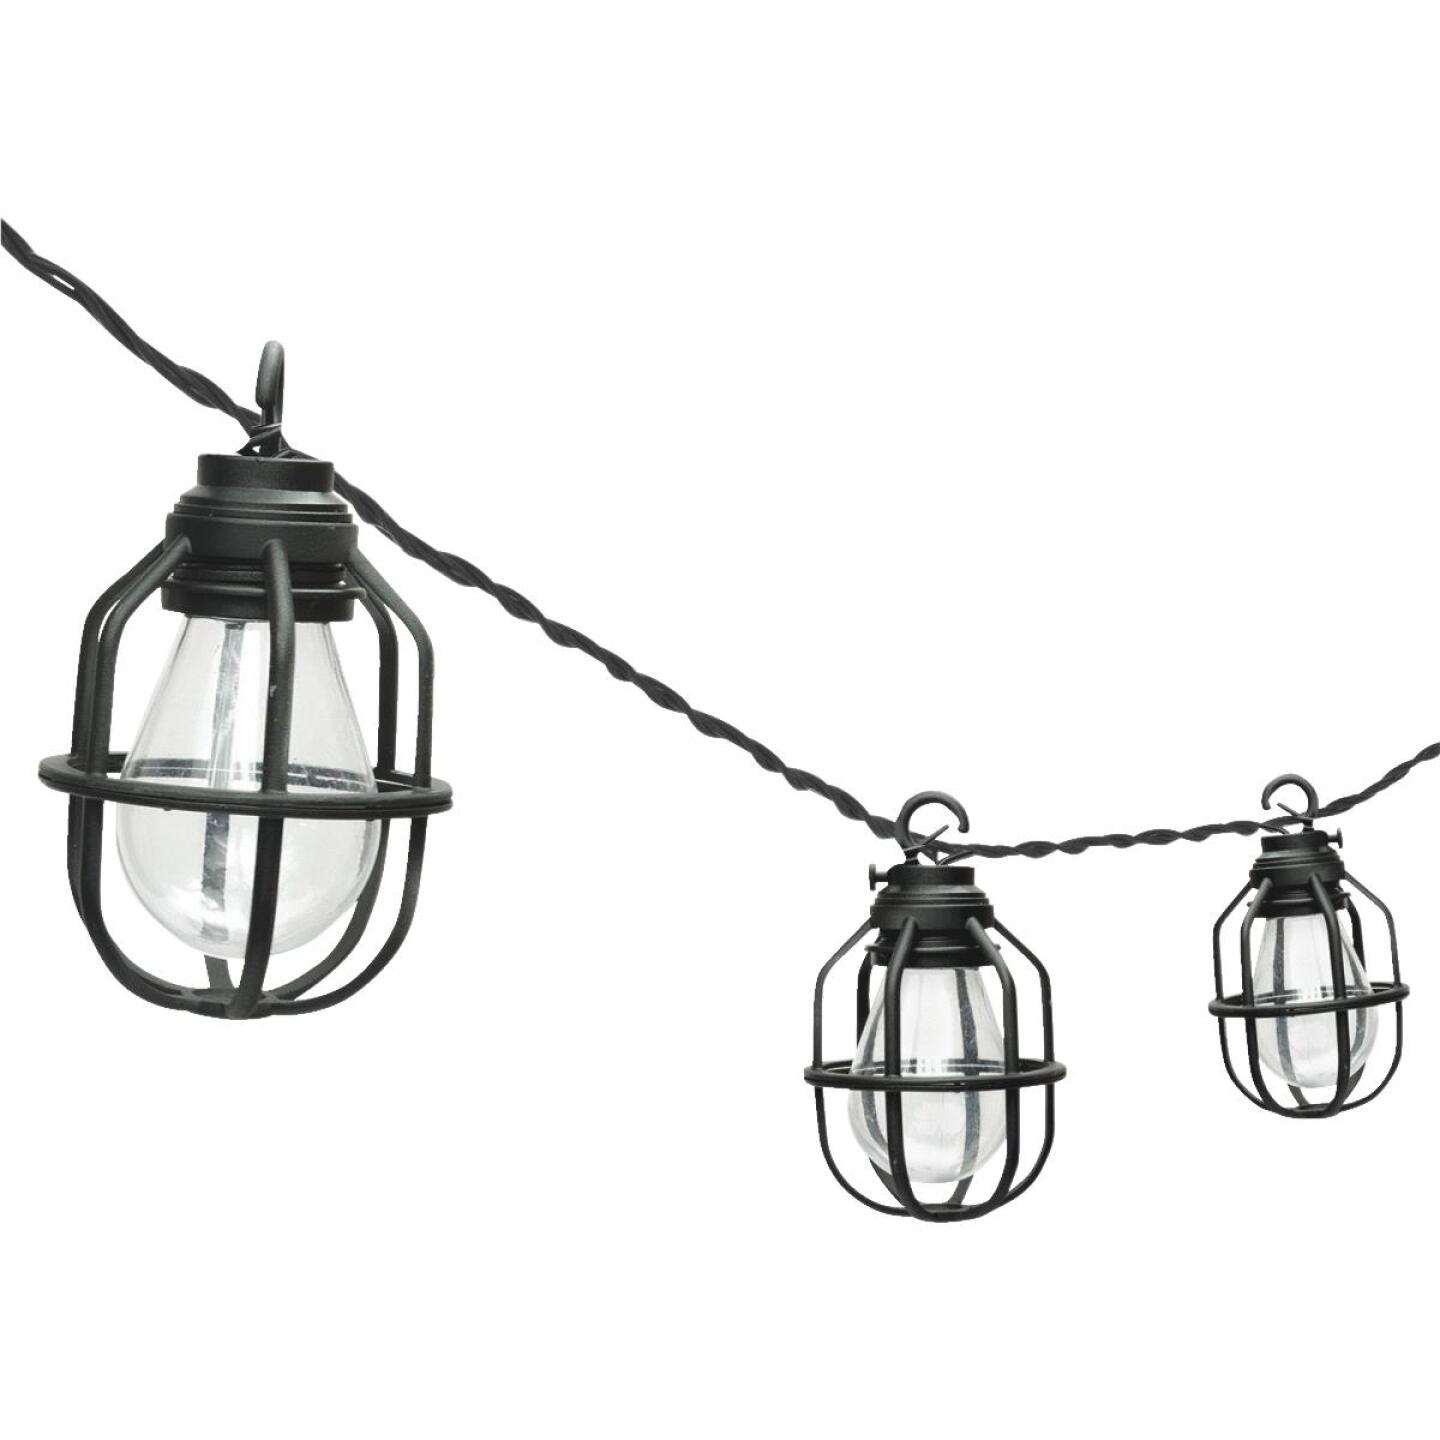 Paradise 10.5 Ft. 10-Light Warm White Black Lantern String Lights Image 1